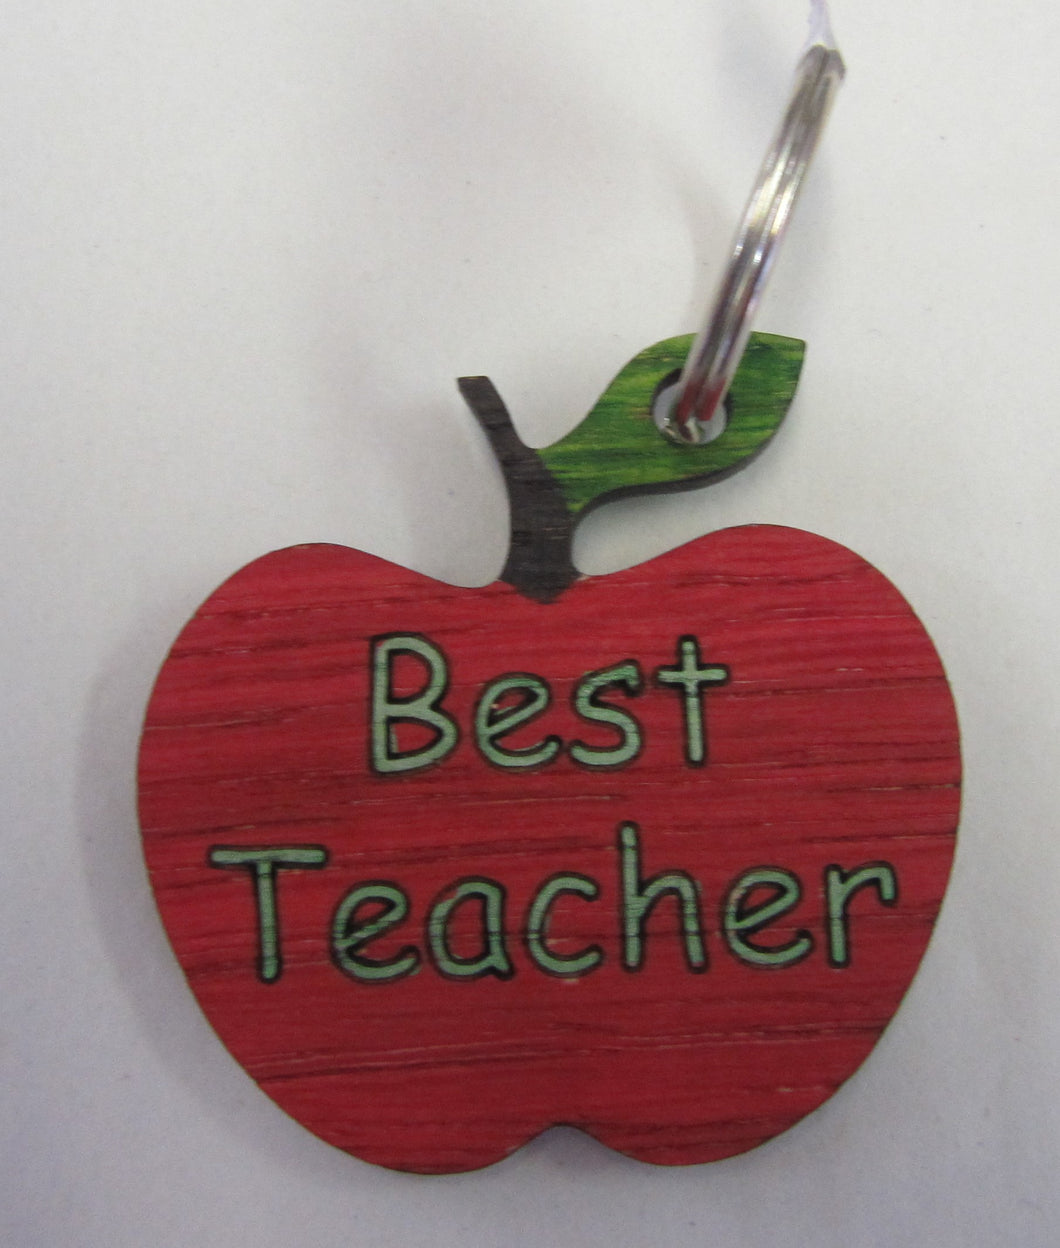 Handcrafted beautiful best teacher apple key ring